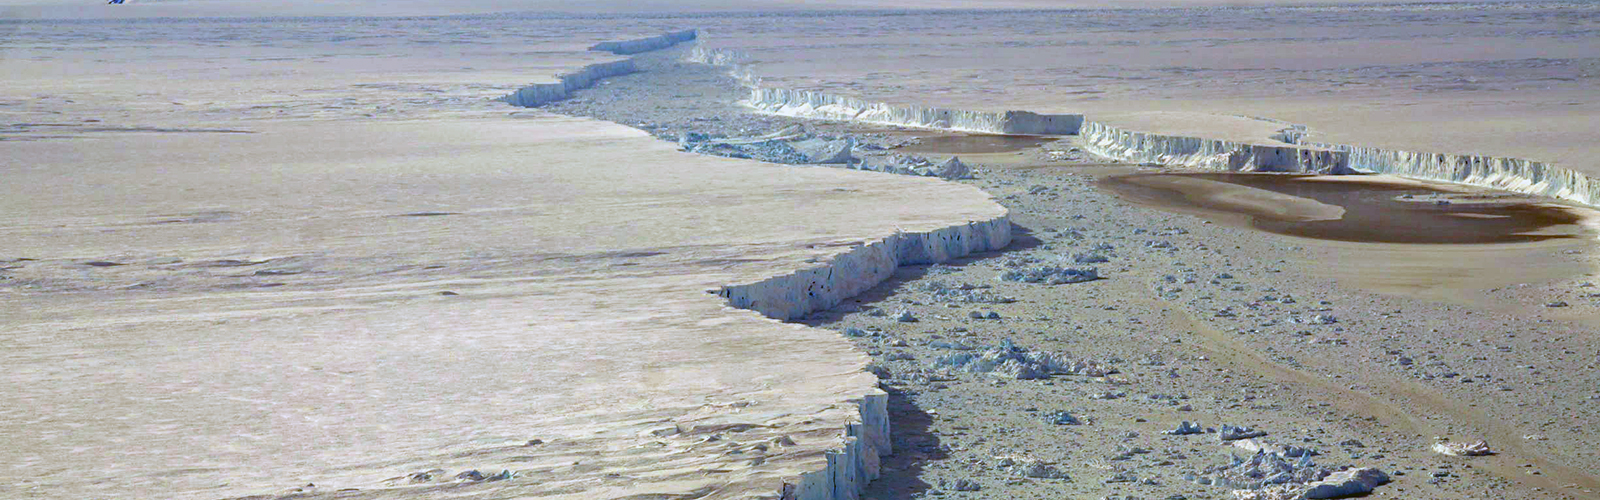 slide 1 - NASA spots massive Antarctic iceberg